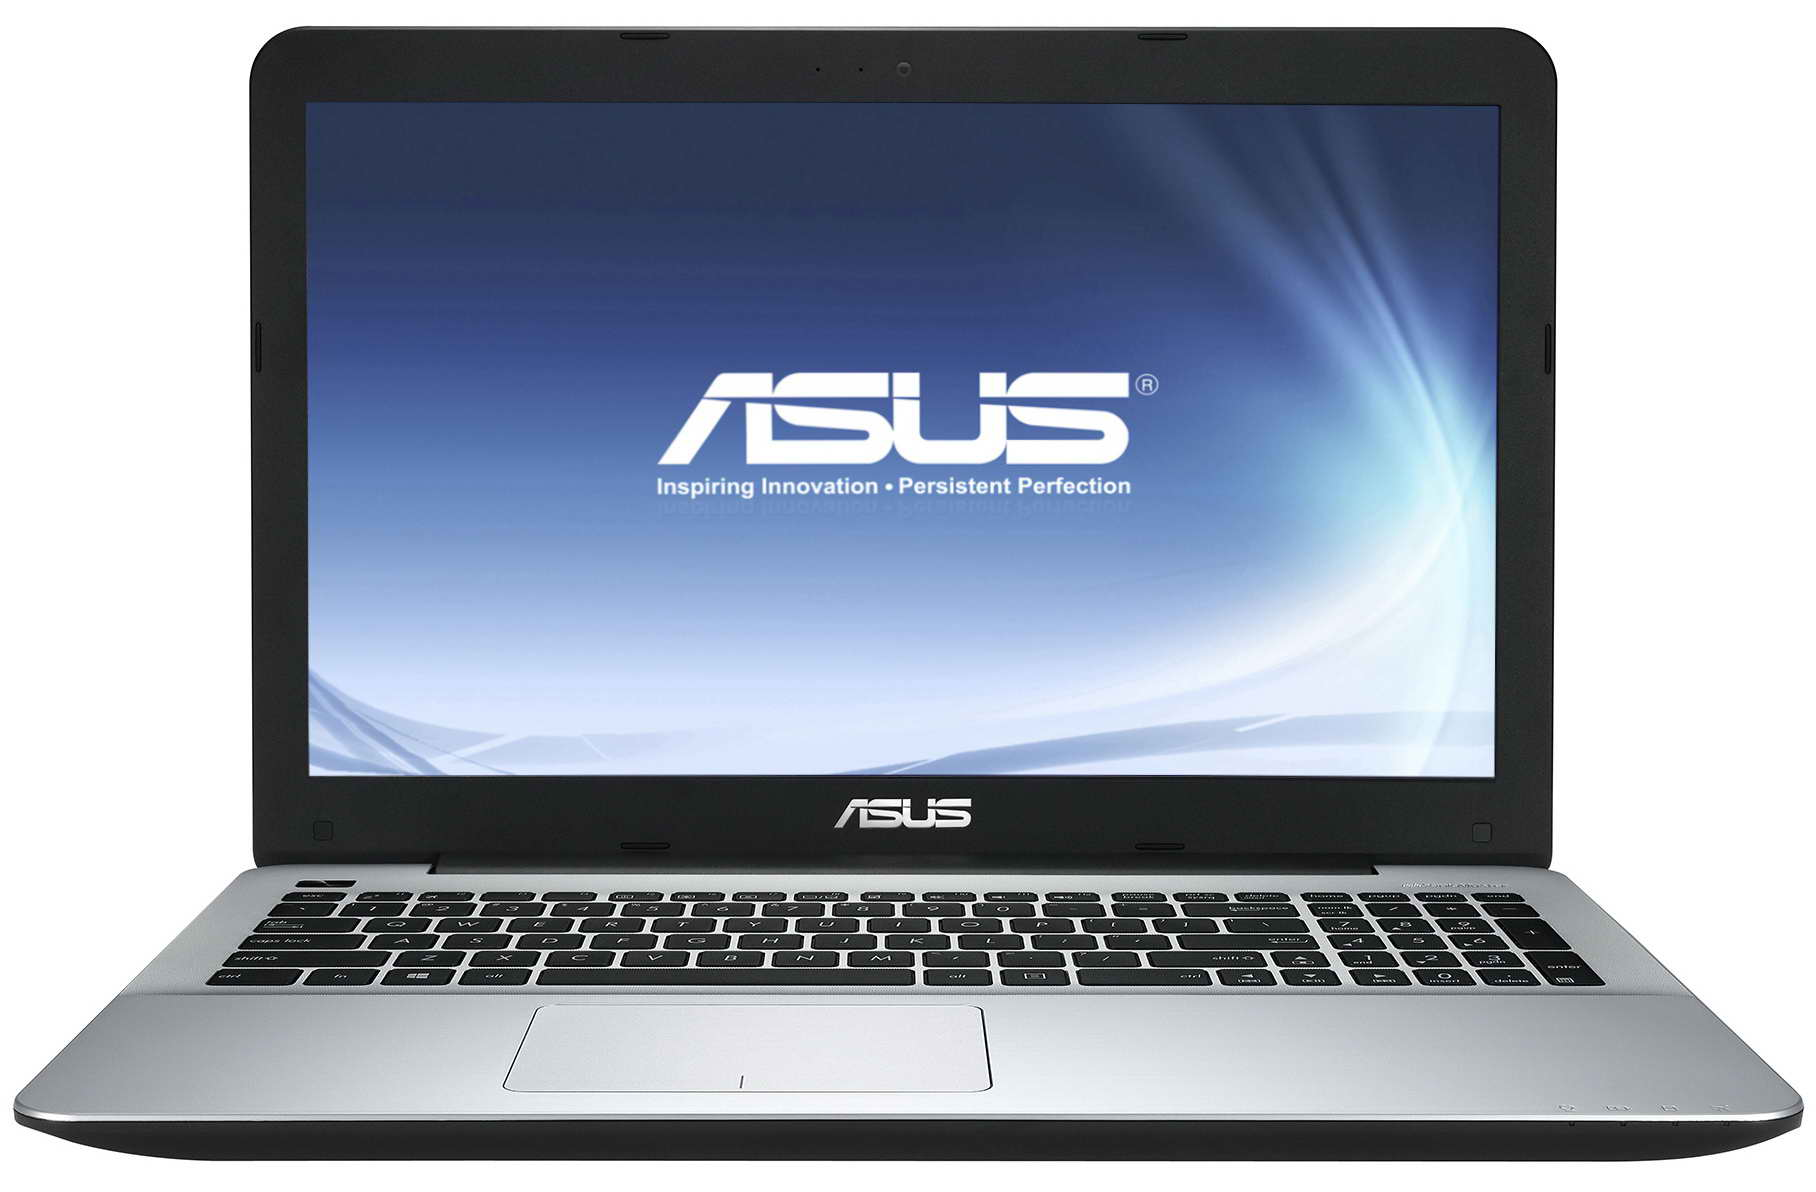 Download Driver Touchpad Asus X441s Windows 7